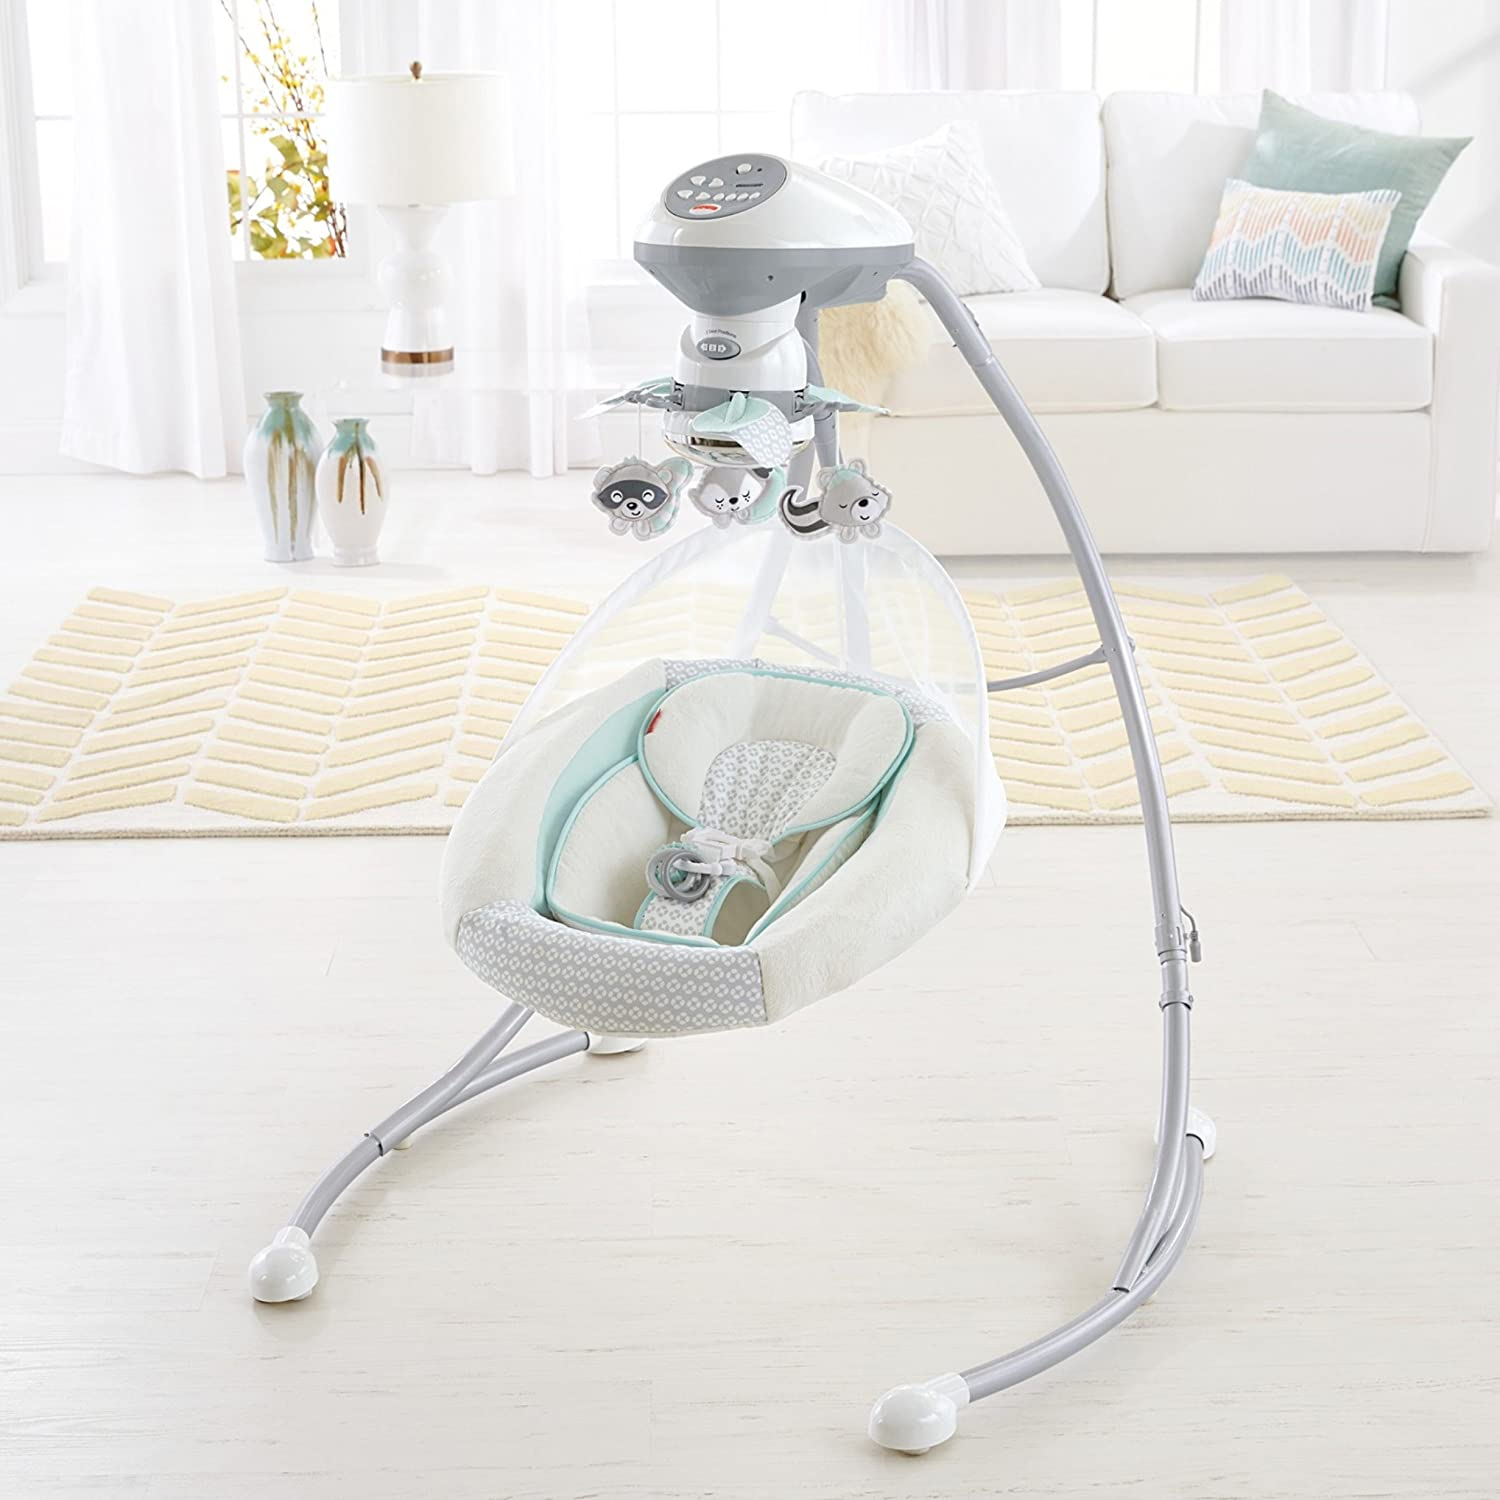 Fisher-Price Take-Along Baby Swing and Seat